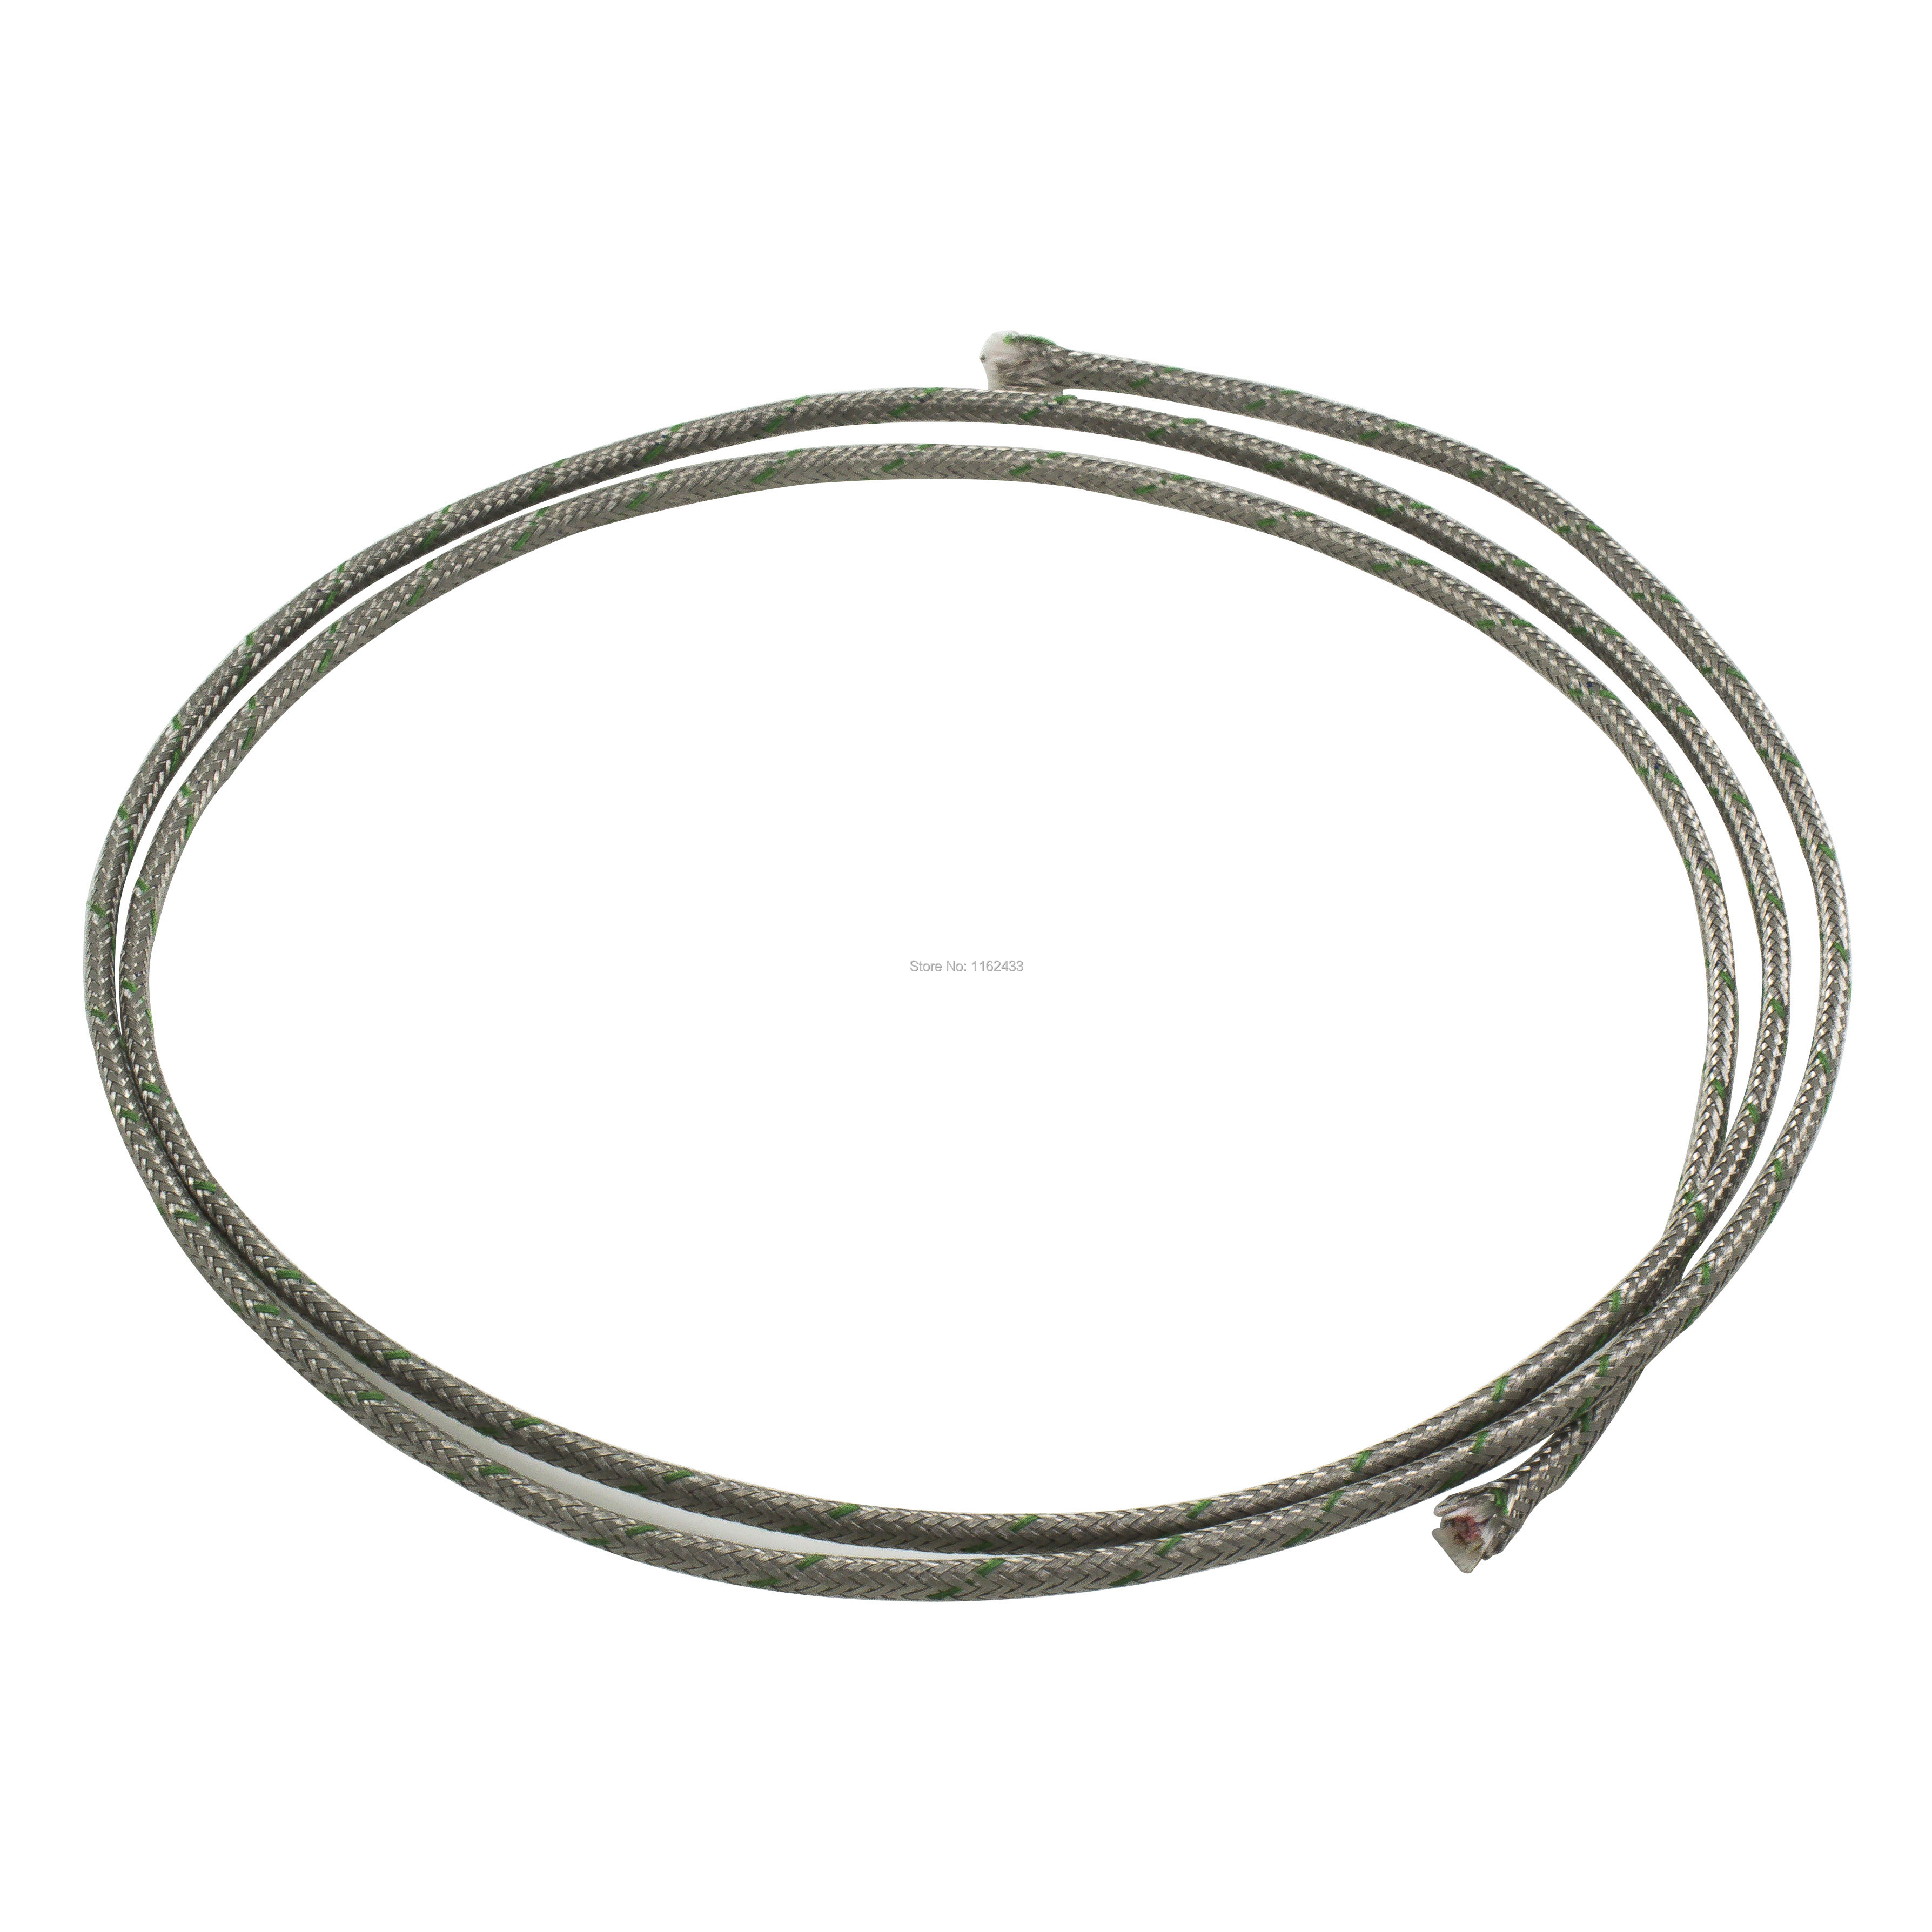 Ftare01 1m S R K Type Thermocouple Extension Wire Compensation Wire Cable For S R K Type